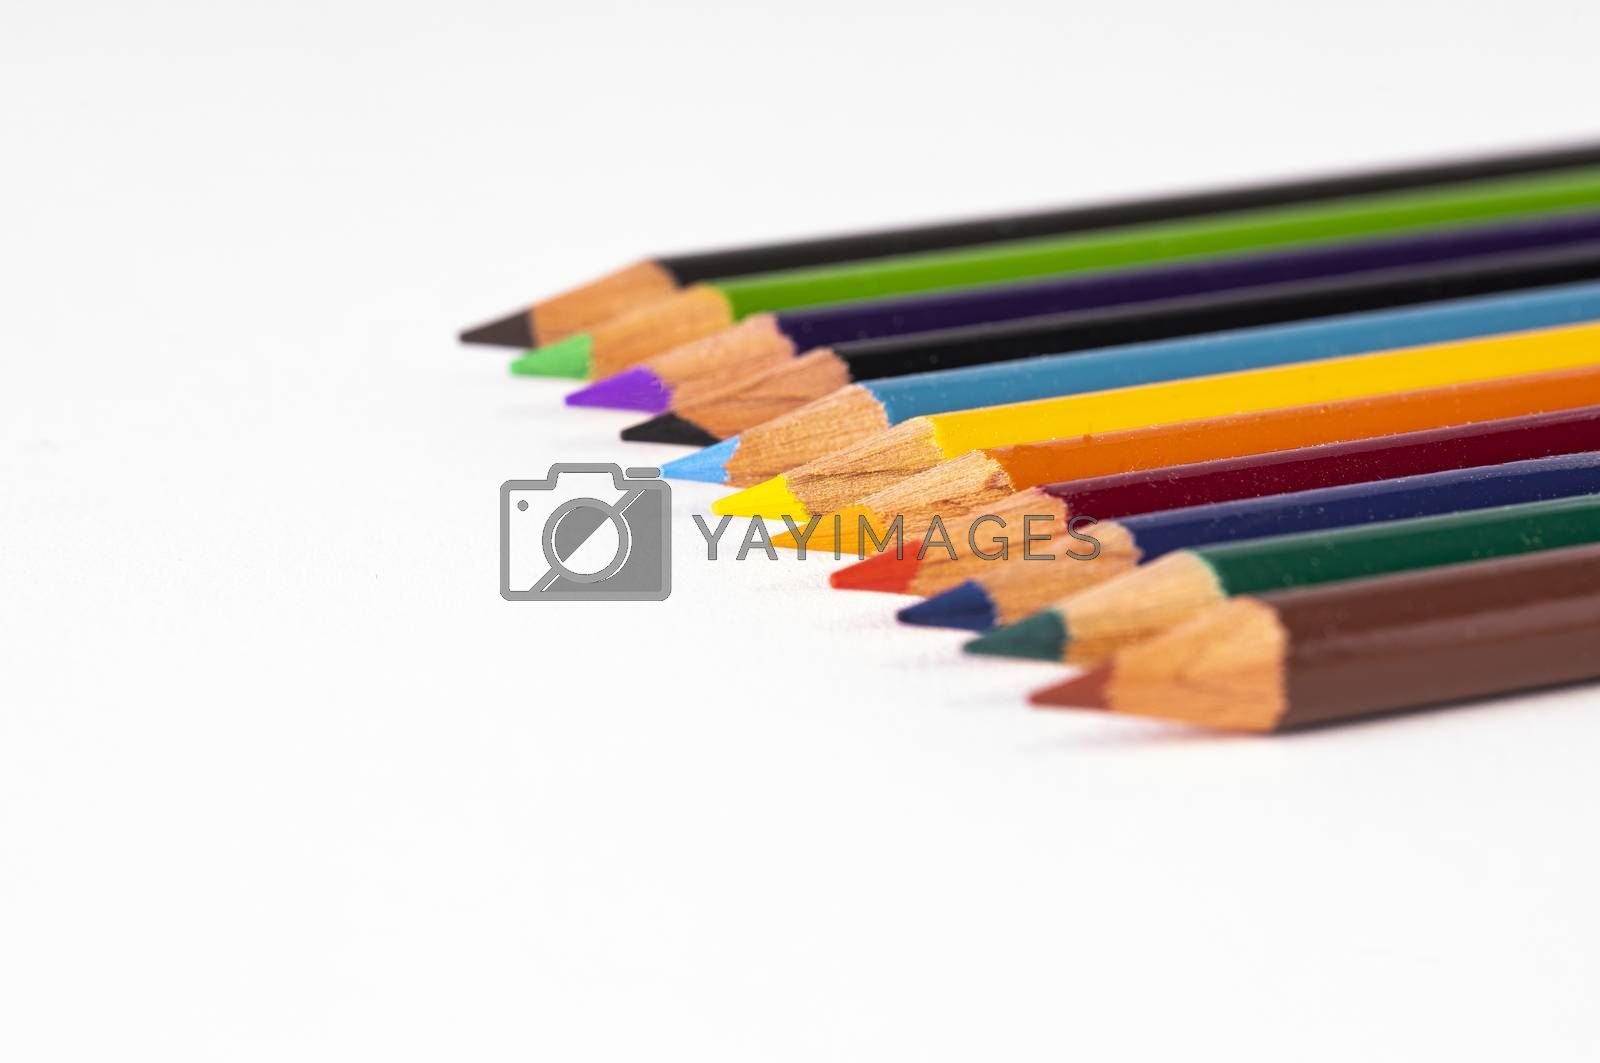 Colored Pencils with Selective Focus by Charlie Floyd